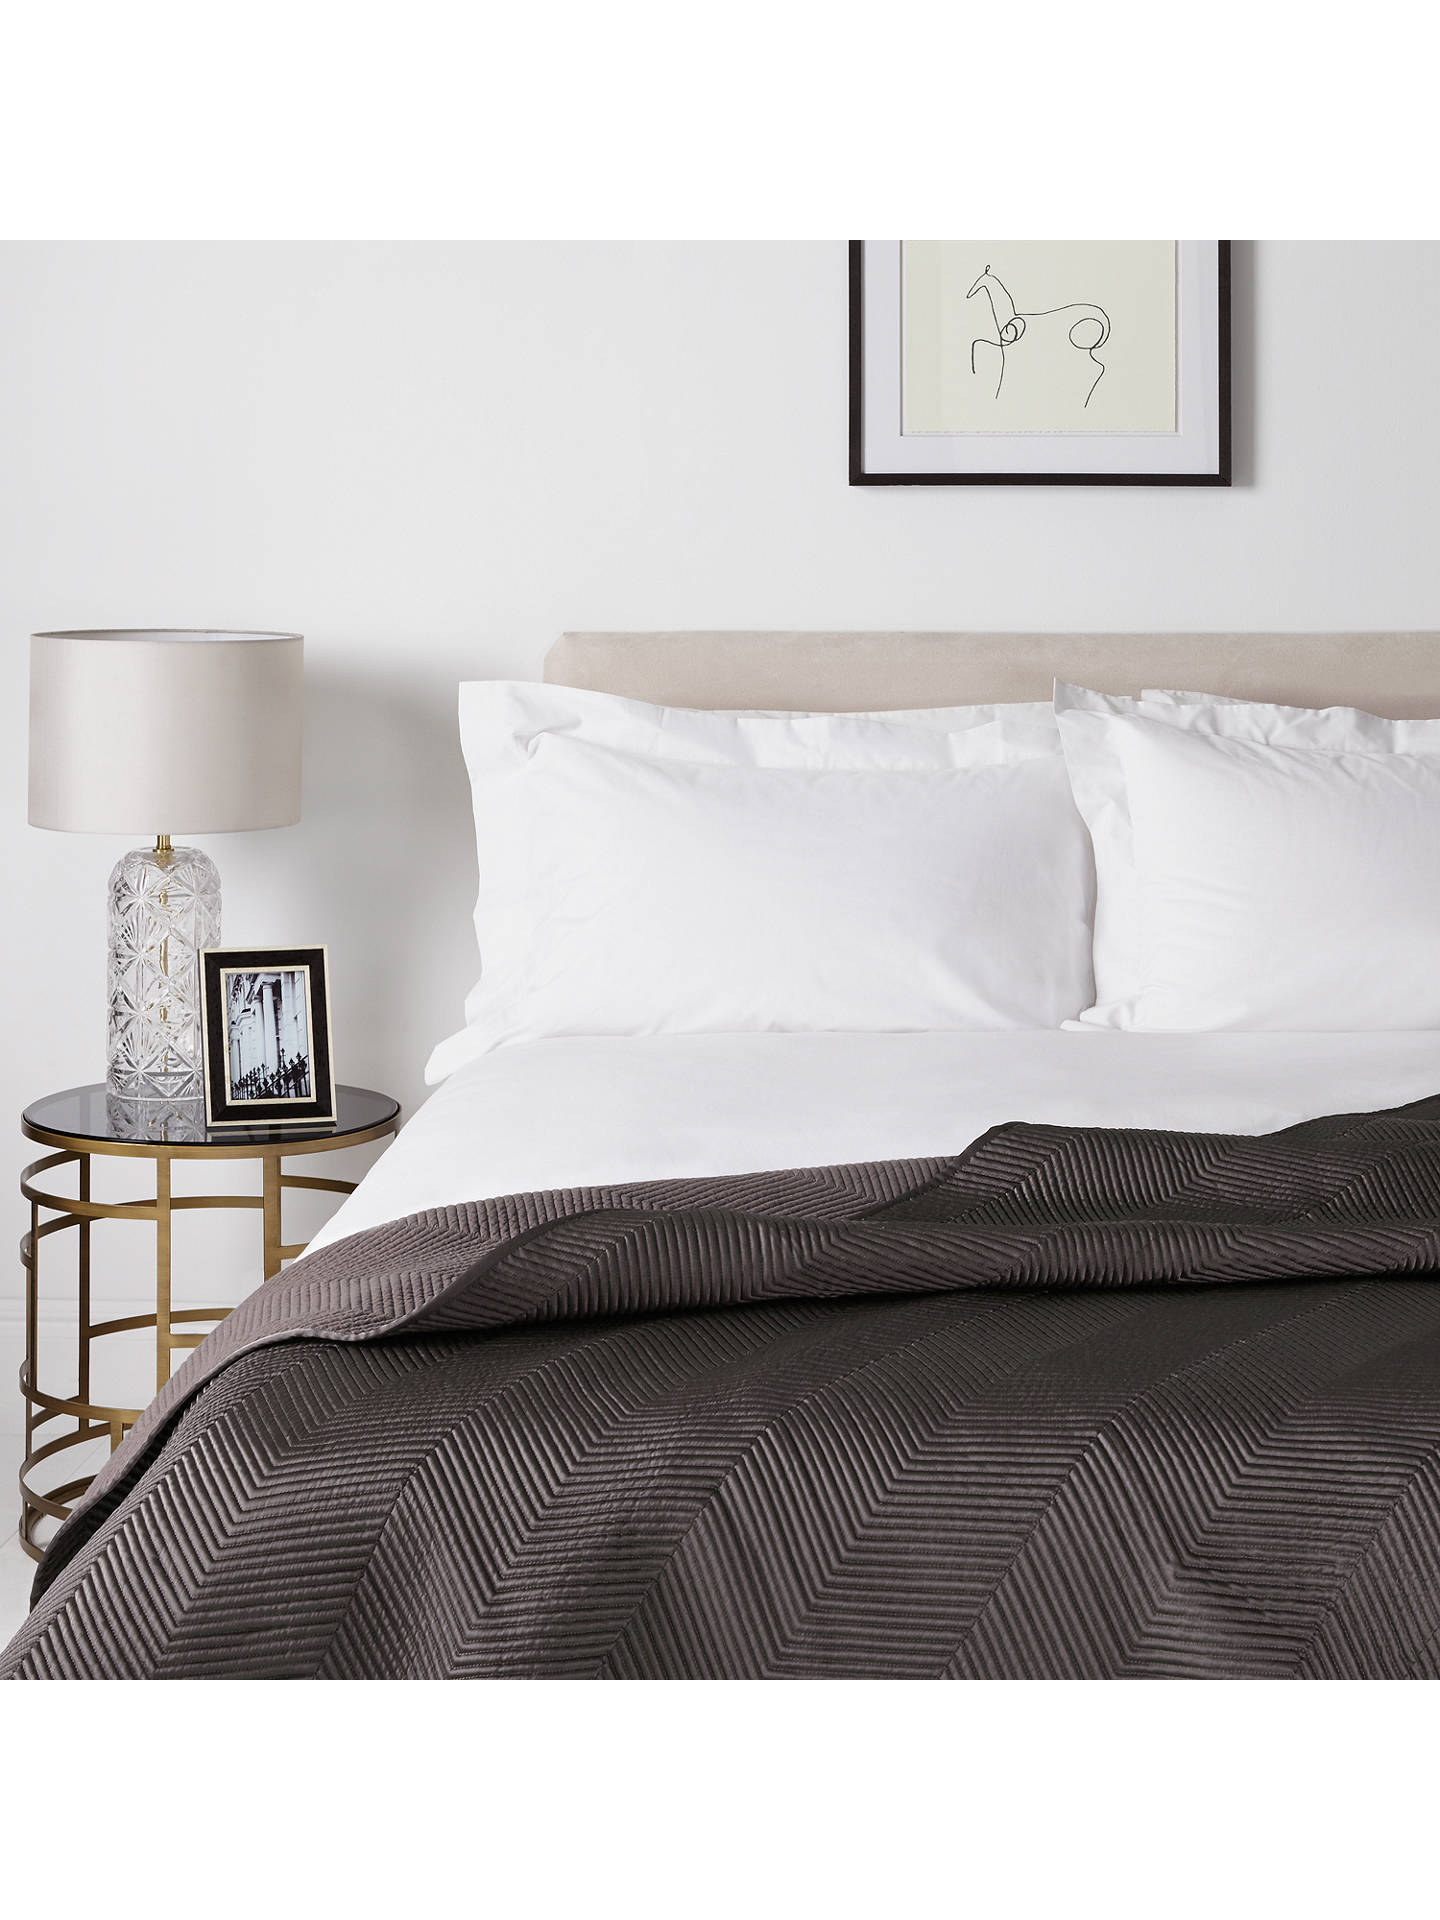 BuyJohn Lewis & Partners Boutique Hotel Linear Bedspread, L260 x W250cm, Steel Online at johnlewis.com